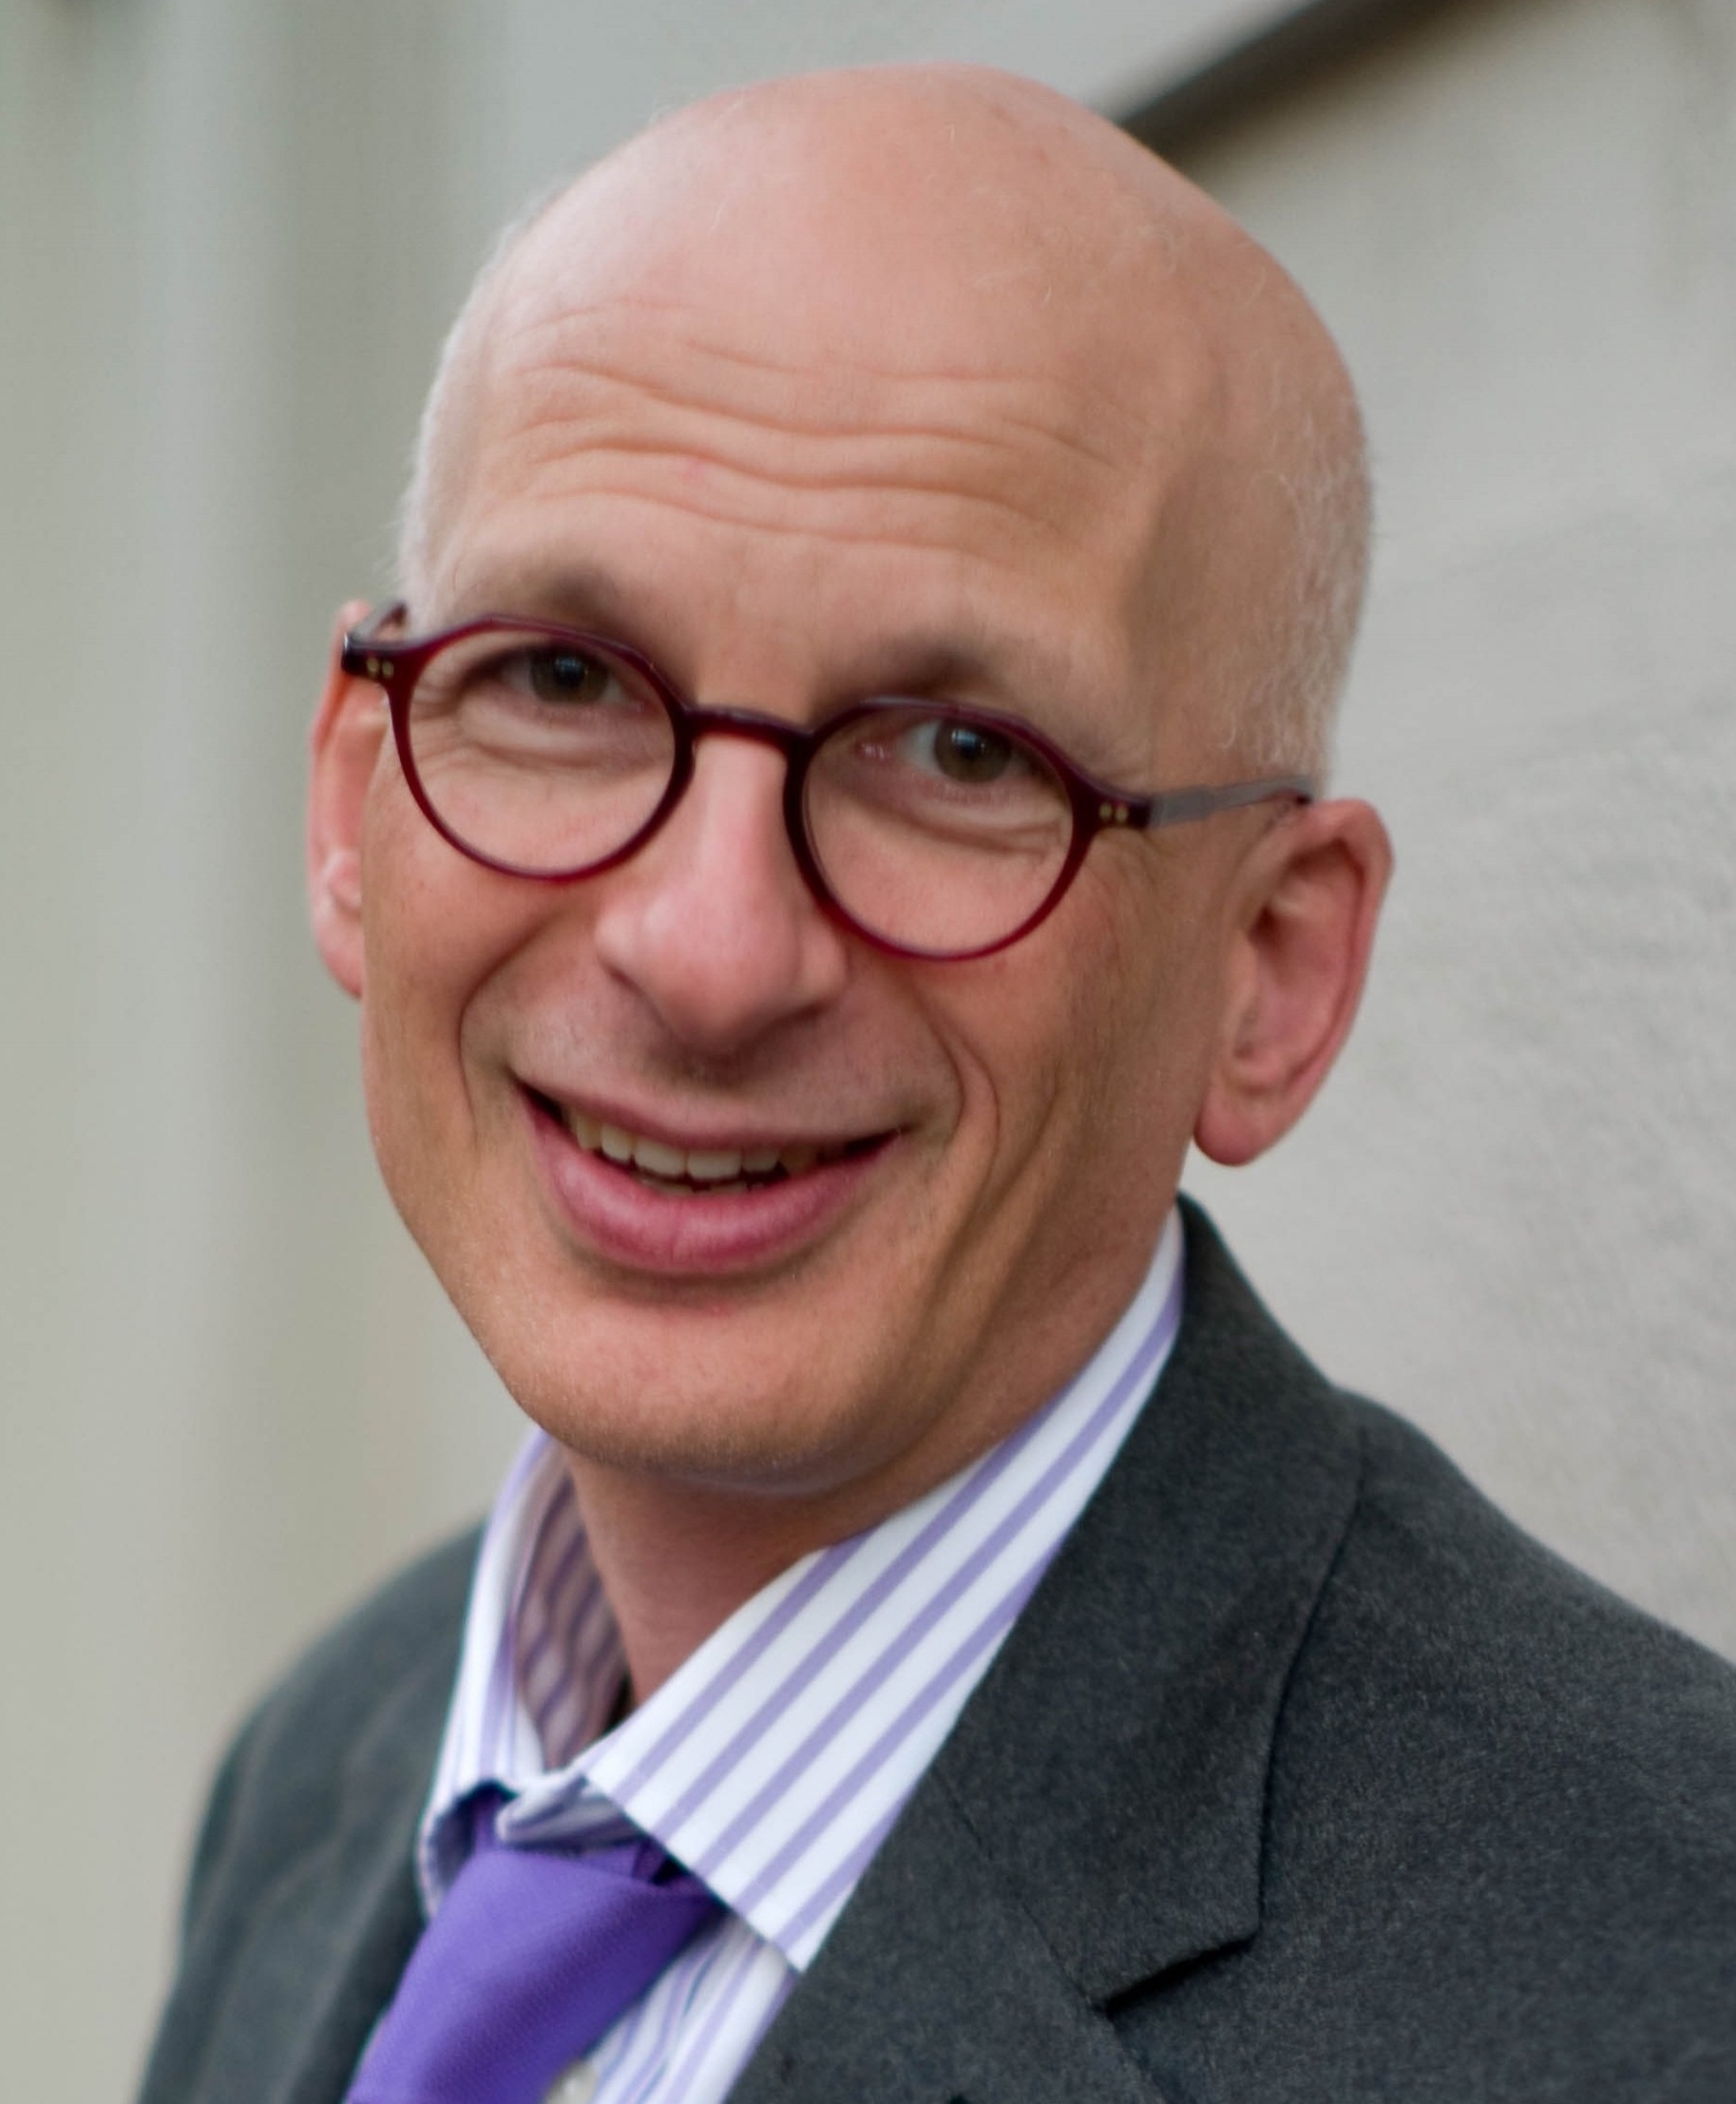 Seth Godin Financial Advisor Marketing